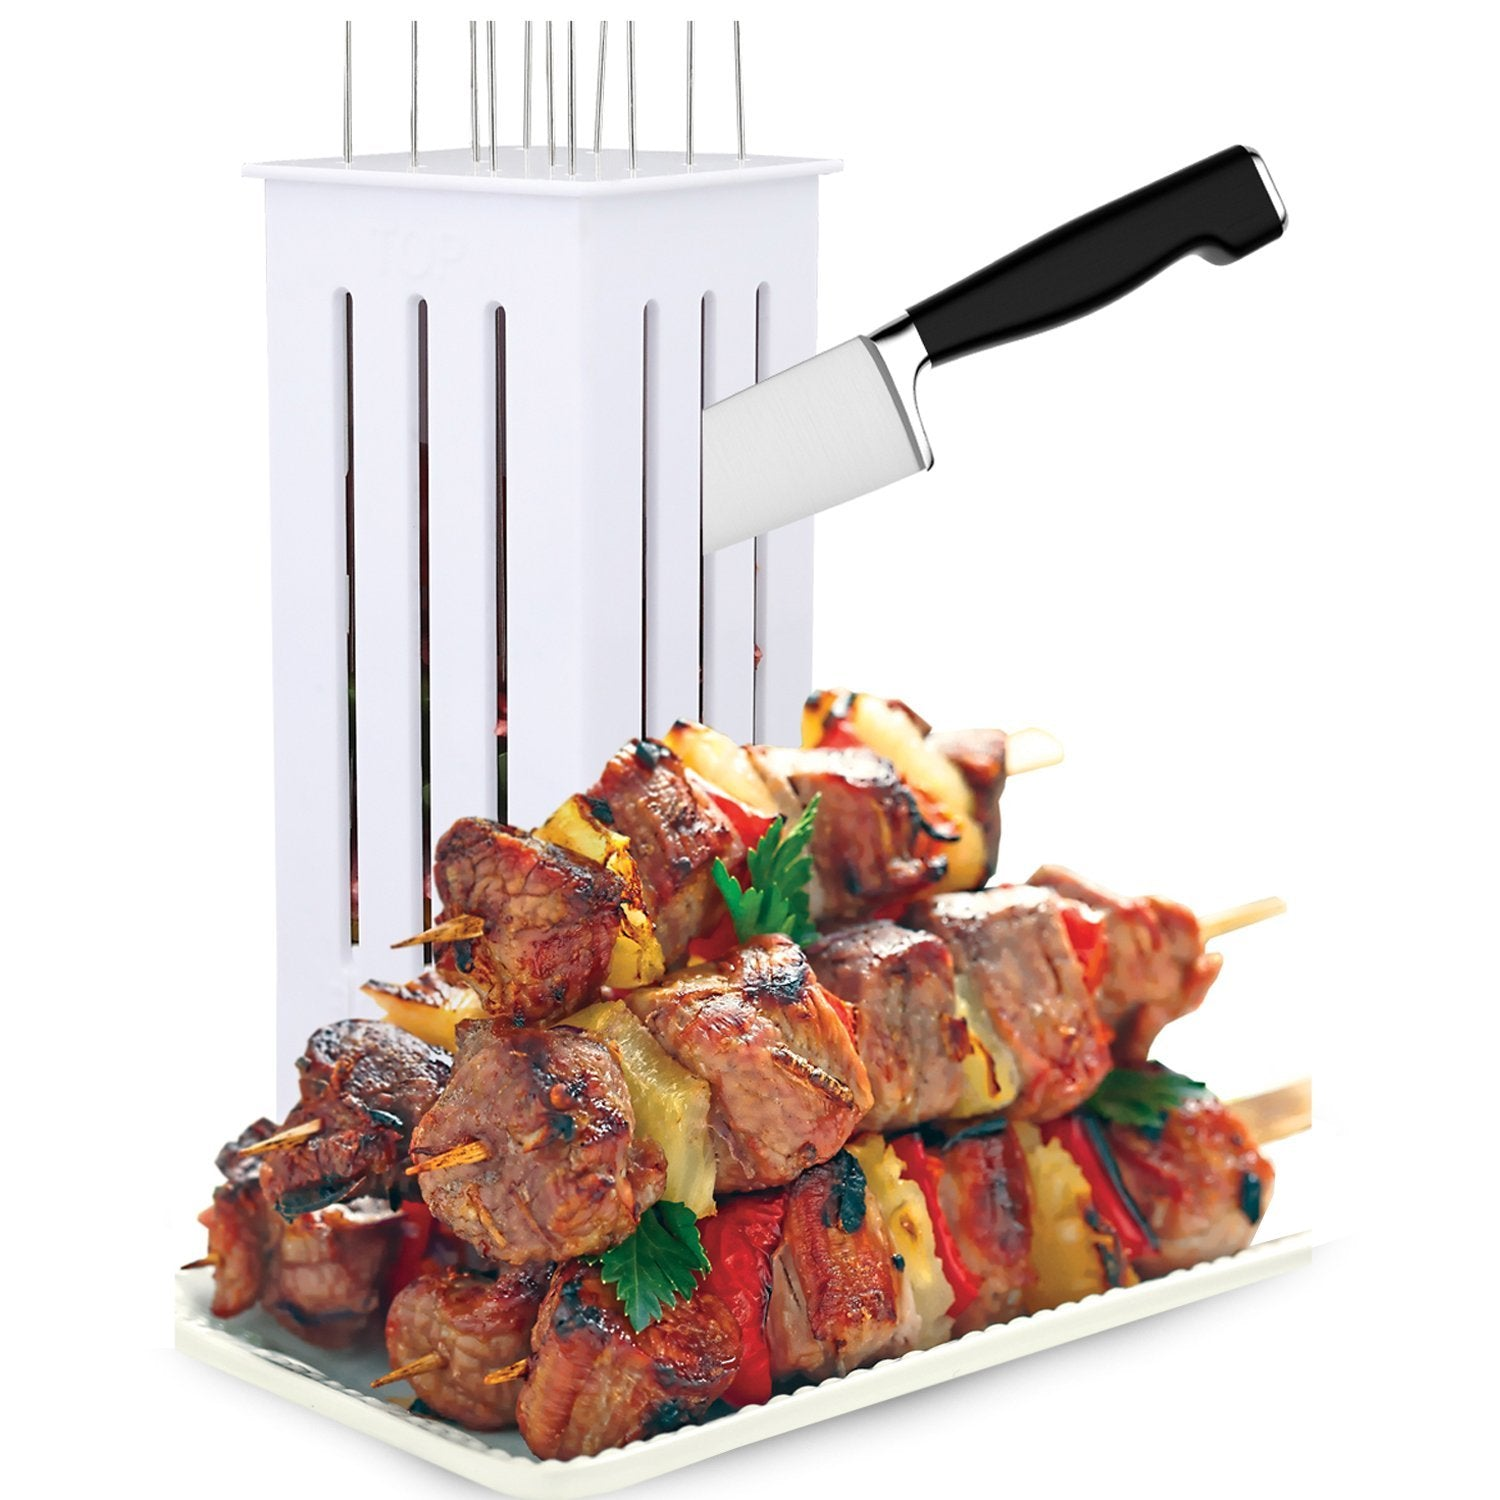 Easy Barbecue Kebab Maker - Jeybeauty